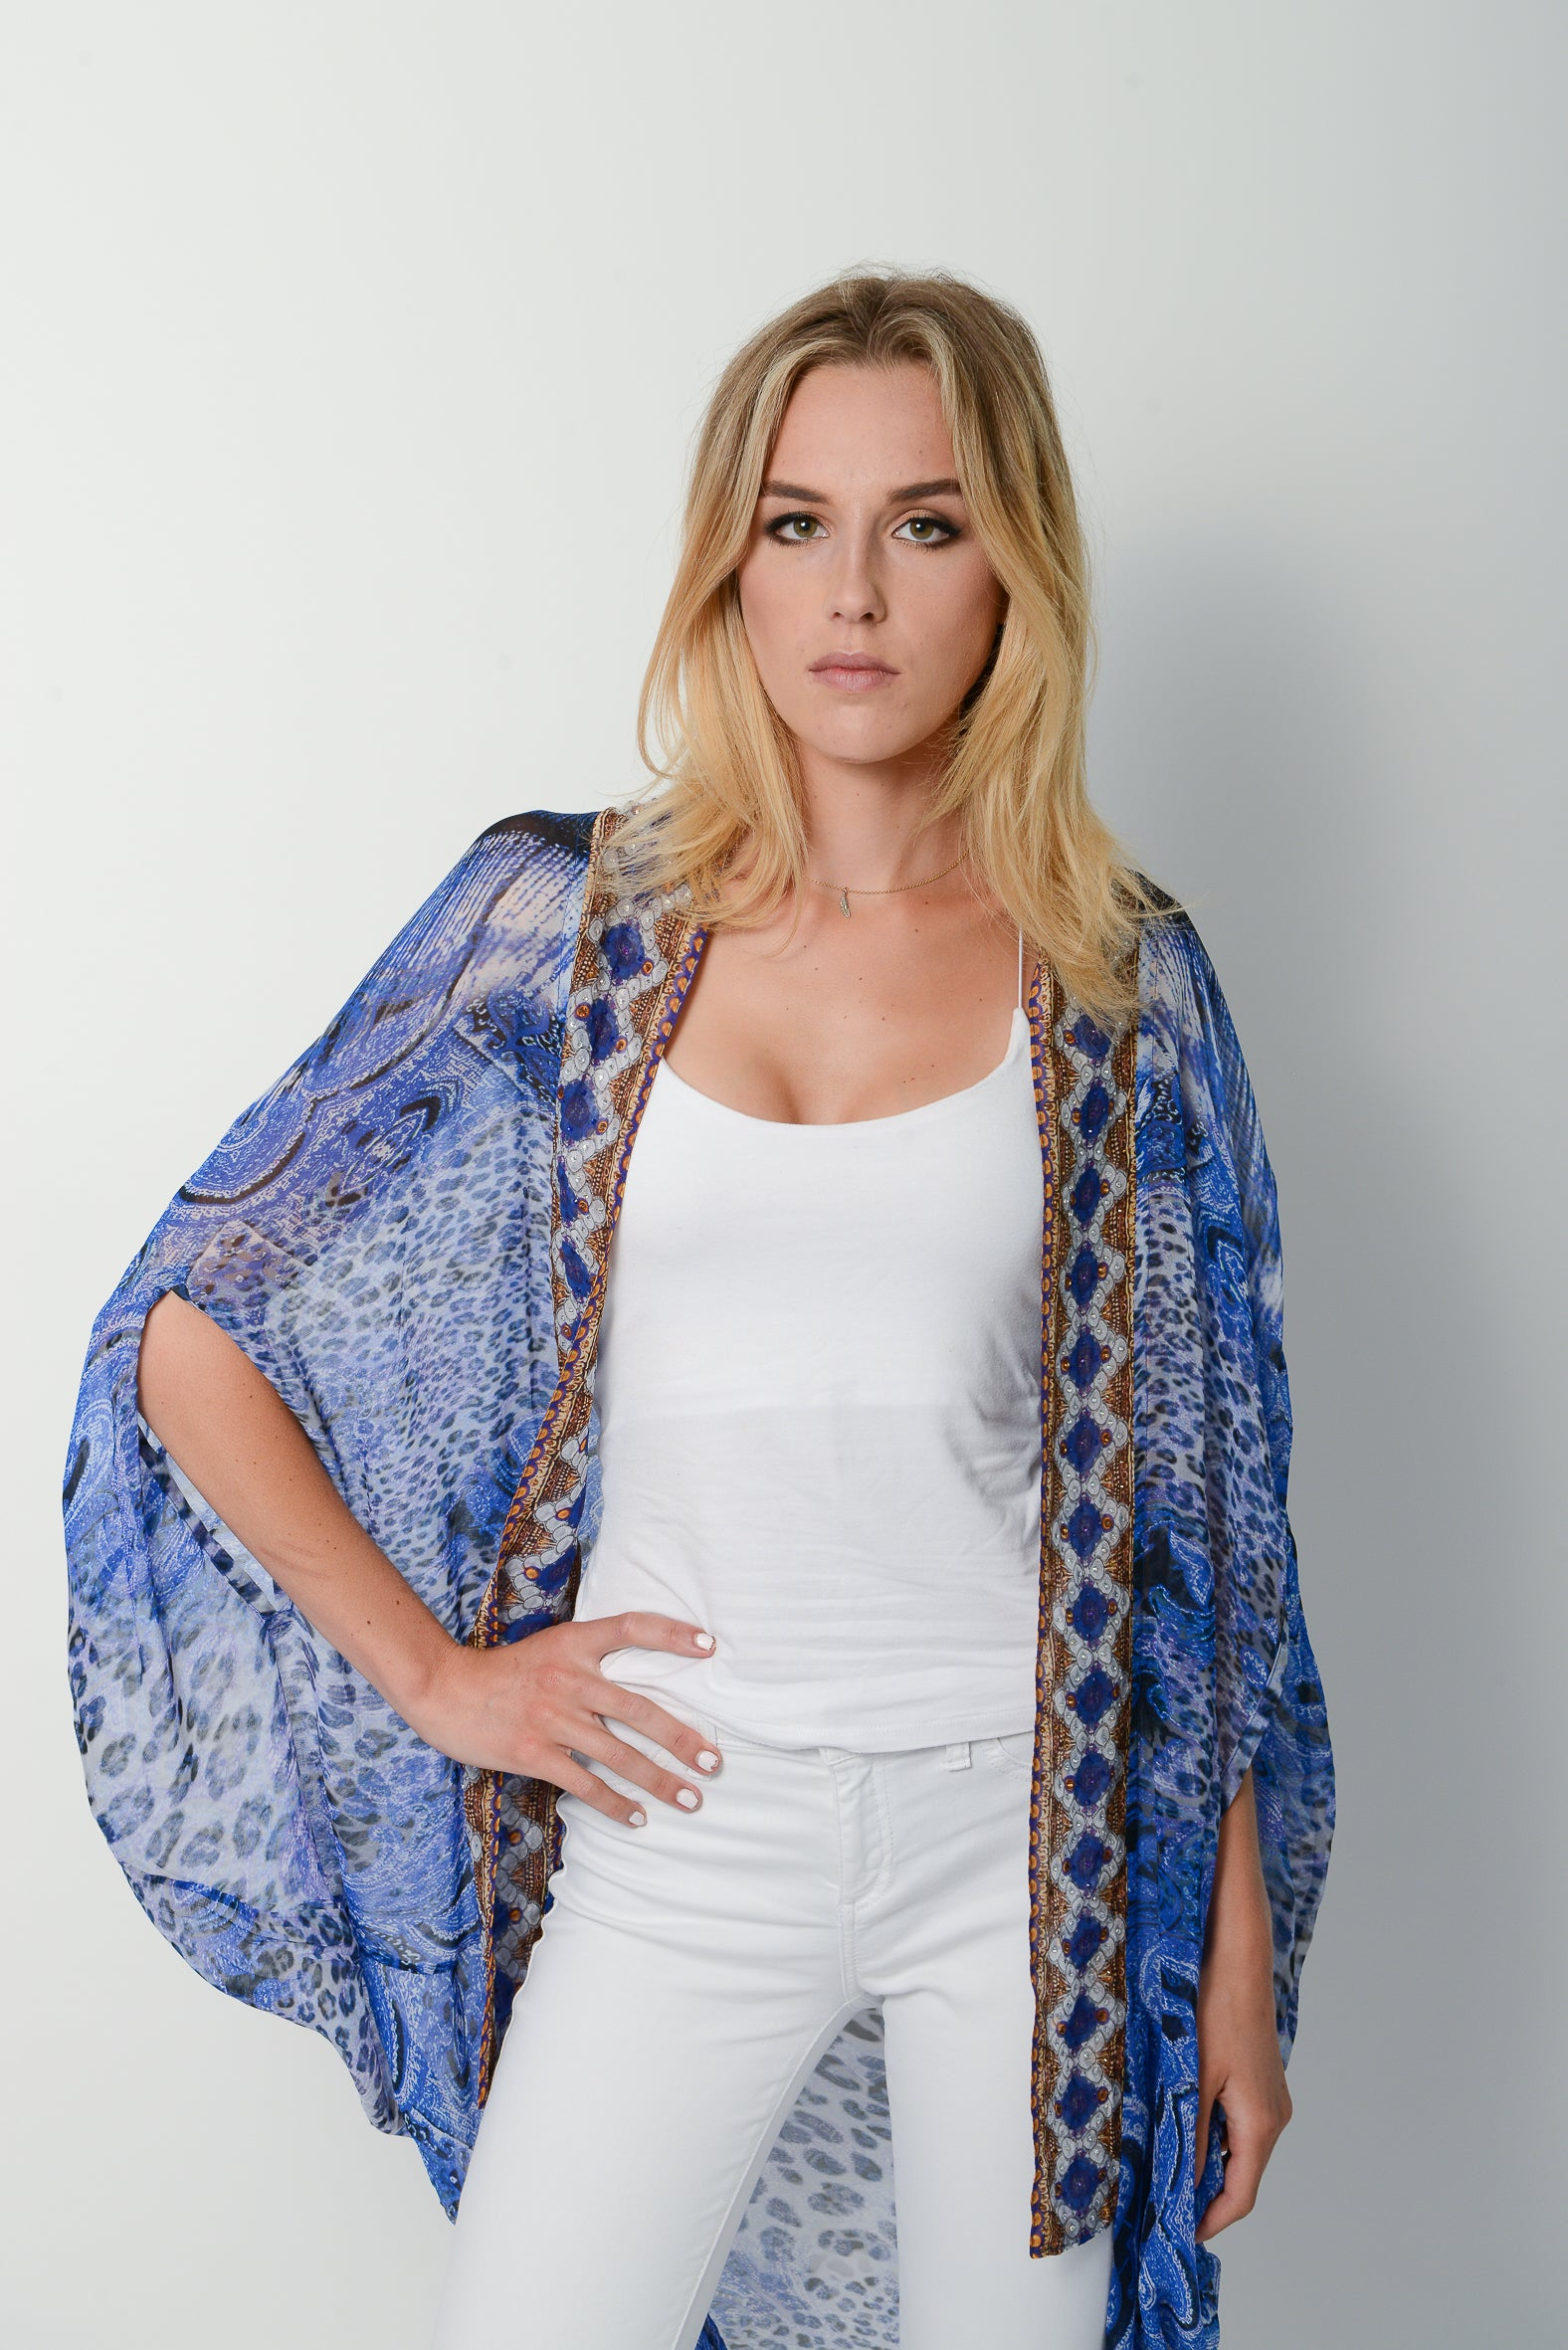 Wild Blue Cape * Limited Stock * - GlamTanz Kaftans & Resortwear Sydney Australia